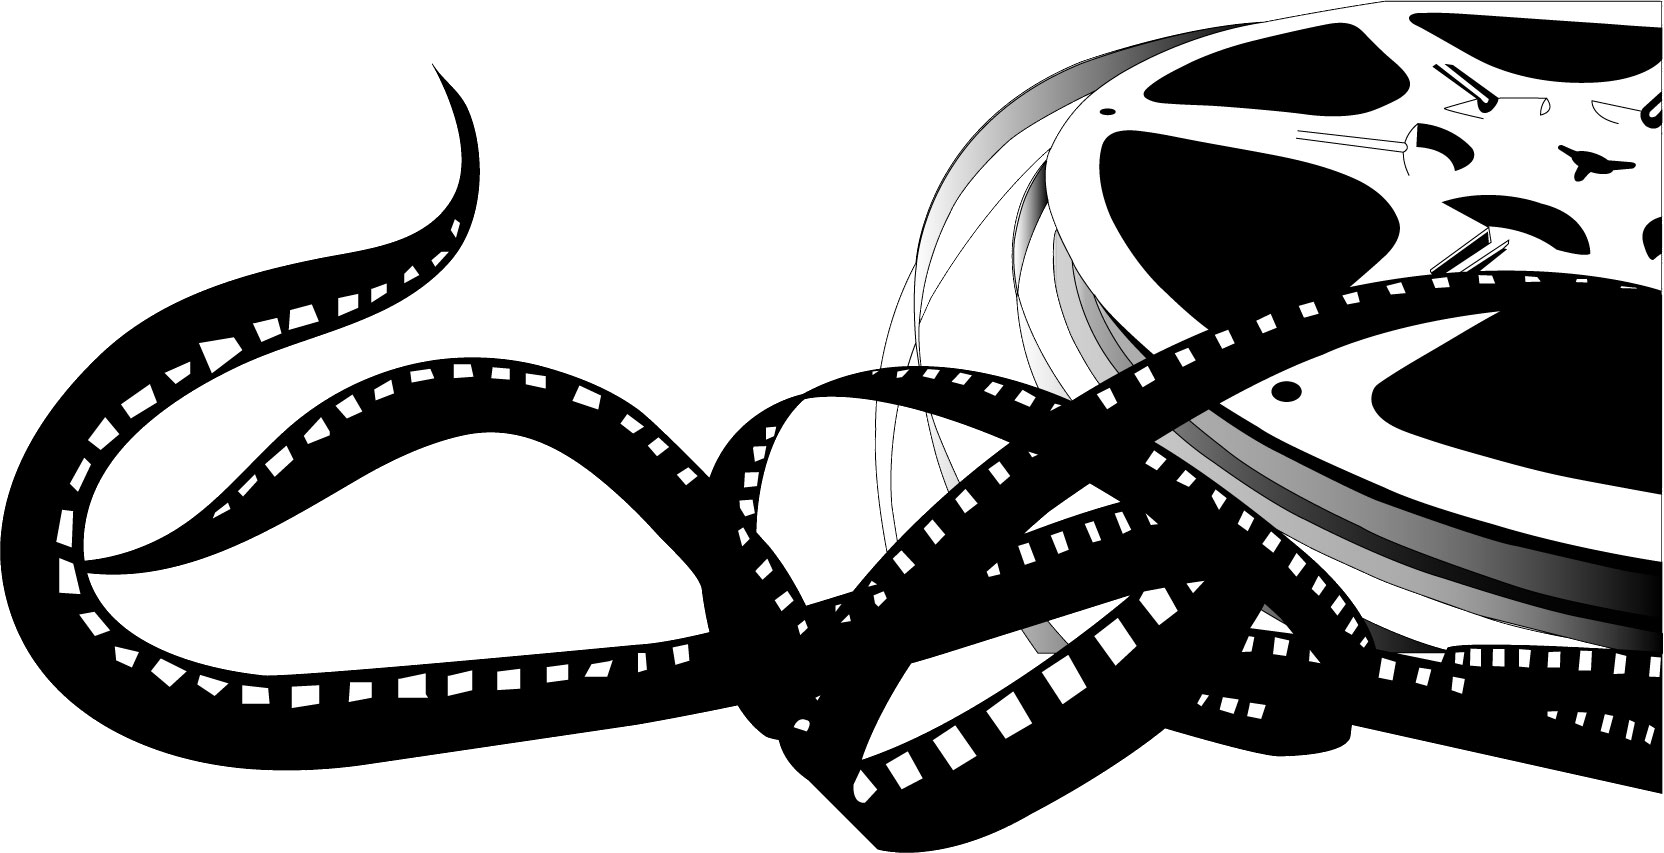 film production png - photo #20